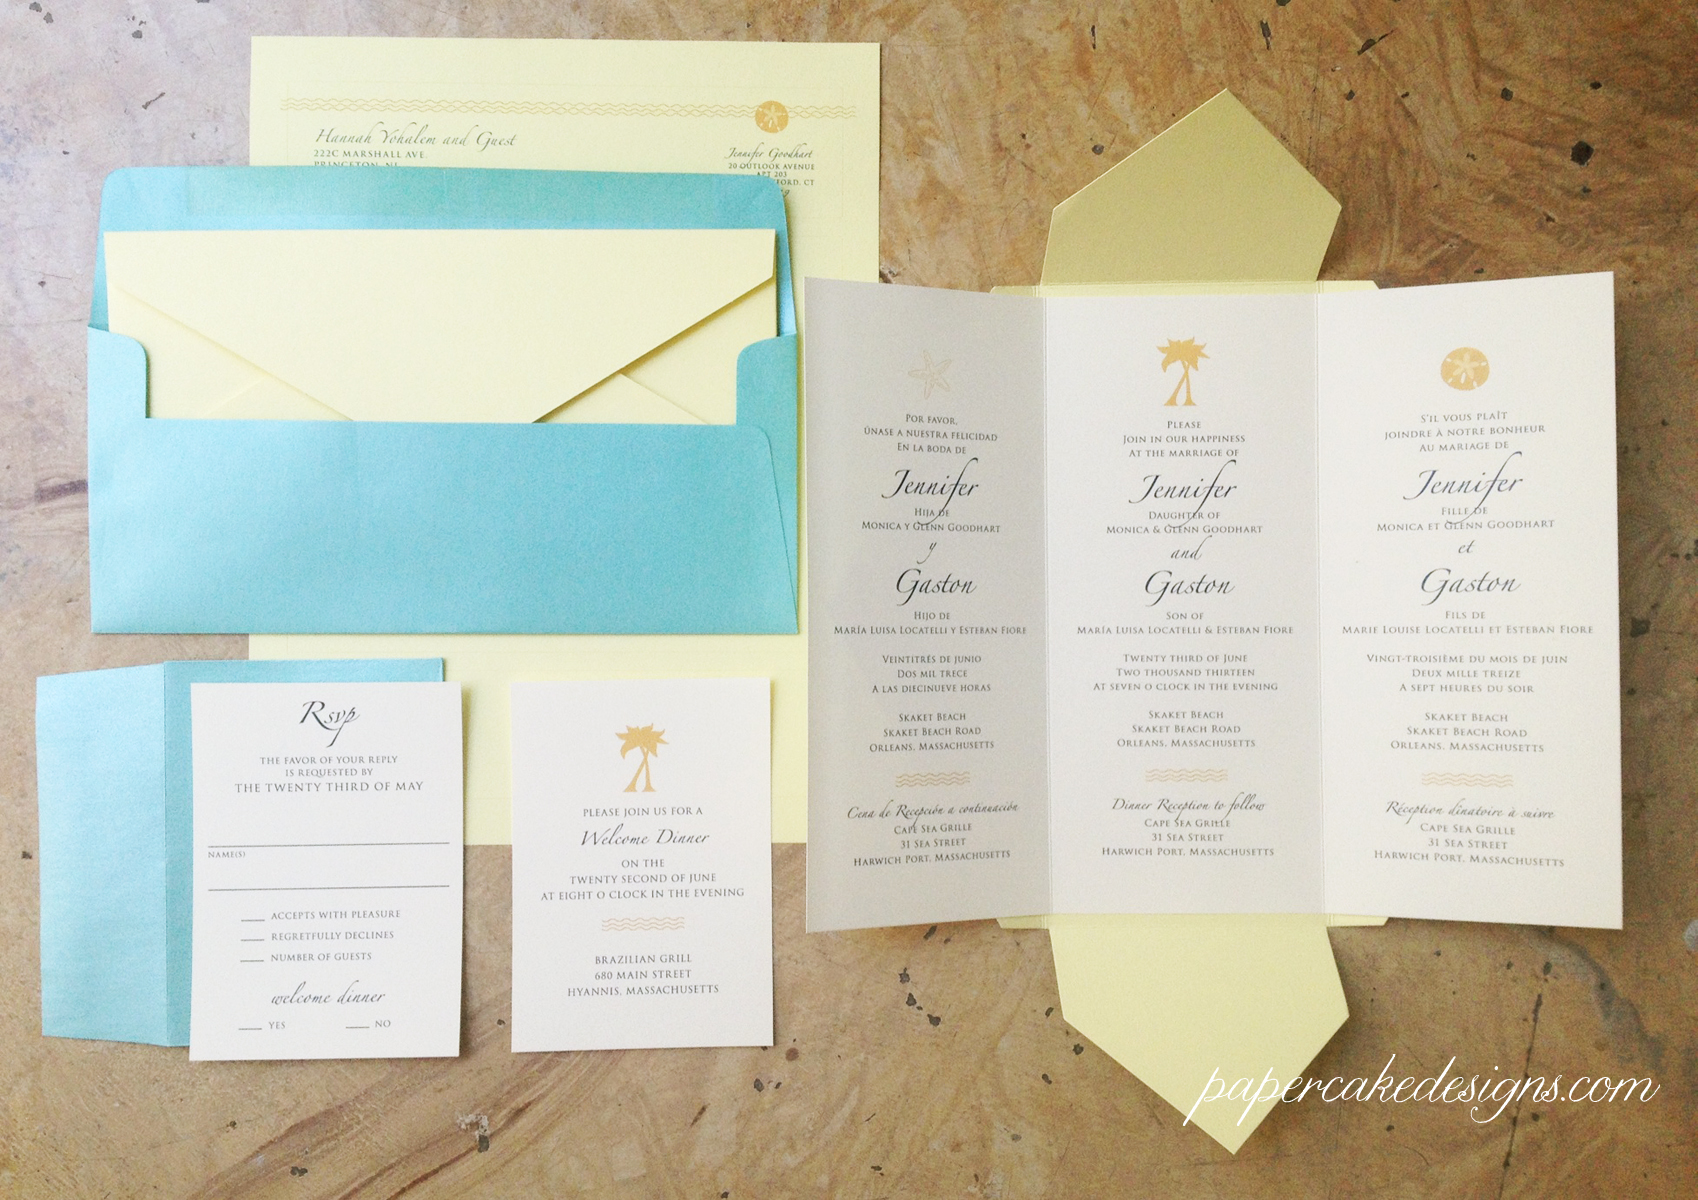 Custom Made Wedding Invitations: [custom Wedding Invitation] Trilingual Pochette